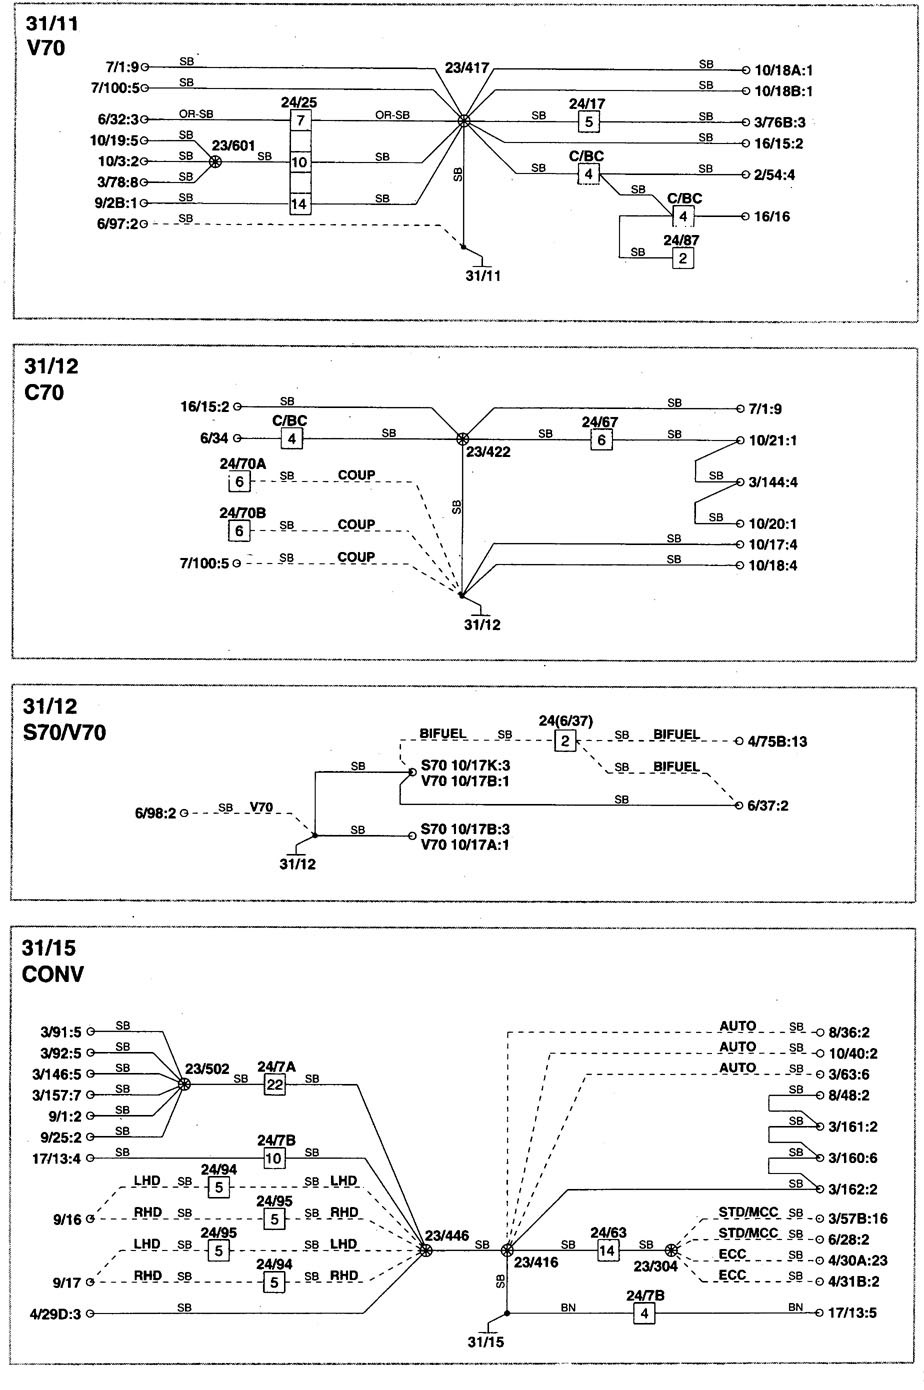 V70 Trailer Wiring Diagram - Lir Wiring 101 on volvo s40 vacuum diagram, volvo s40 valve cover removal, volvo s40 engine problems, volvo s40 ignition switch, volvo amazon wiring diagram, volvo s40 starter, volvo s40 steering diagram, volvo s40 coolant diagram, volvo s40 stereo diagram, volvo s40 body, volvo s40 engine diagram, volvo s40 speaker, volvo s40 thermostat, volvo s40 antenna, volvo s40 relay location, volvo s40 brochure, volvo s40 firing order, volvo s40 engine removal, volvo s40 frame, volvo ignition wiring diagram,